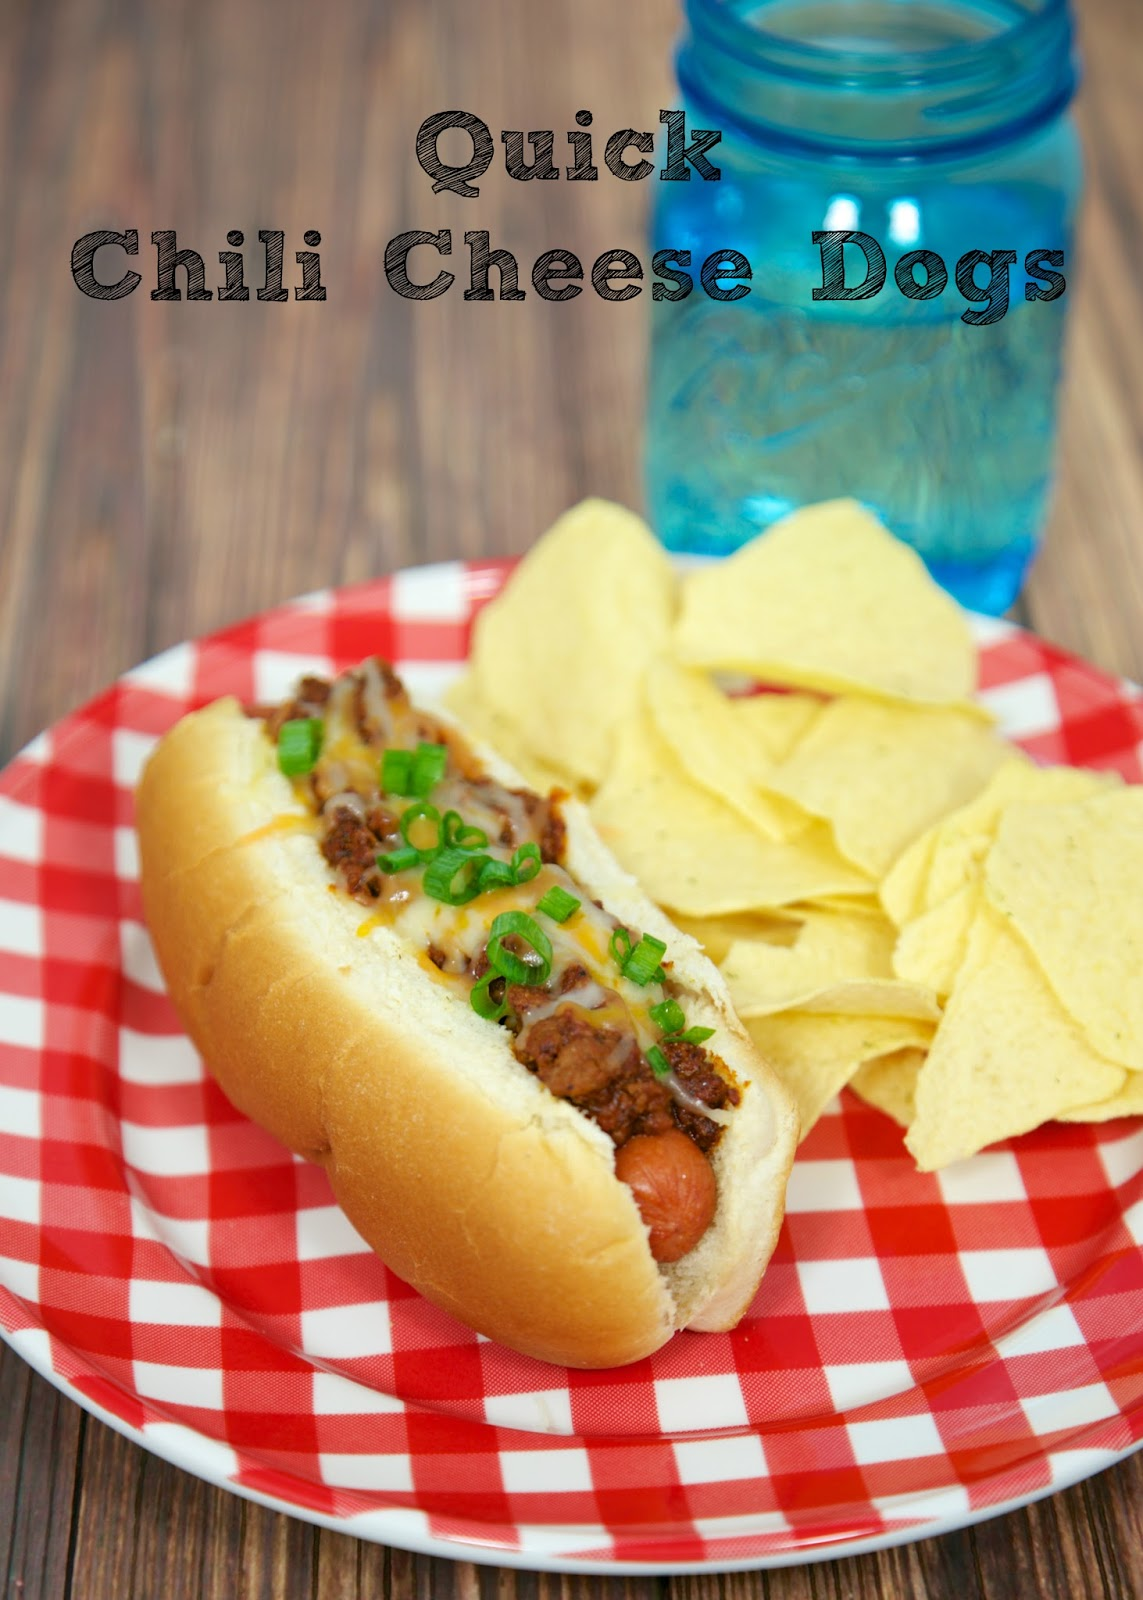 Quick Chili Cheese Dogs Recipe - homemade hot dog chili - ground beef, onions, garlic, tomato sauce, chili powder - the chili is great by itself, but puts a hot dog over the top! Top hot dogs with cheese and green onions. Chili can be made ahead of time and reheated later.